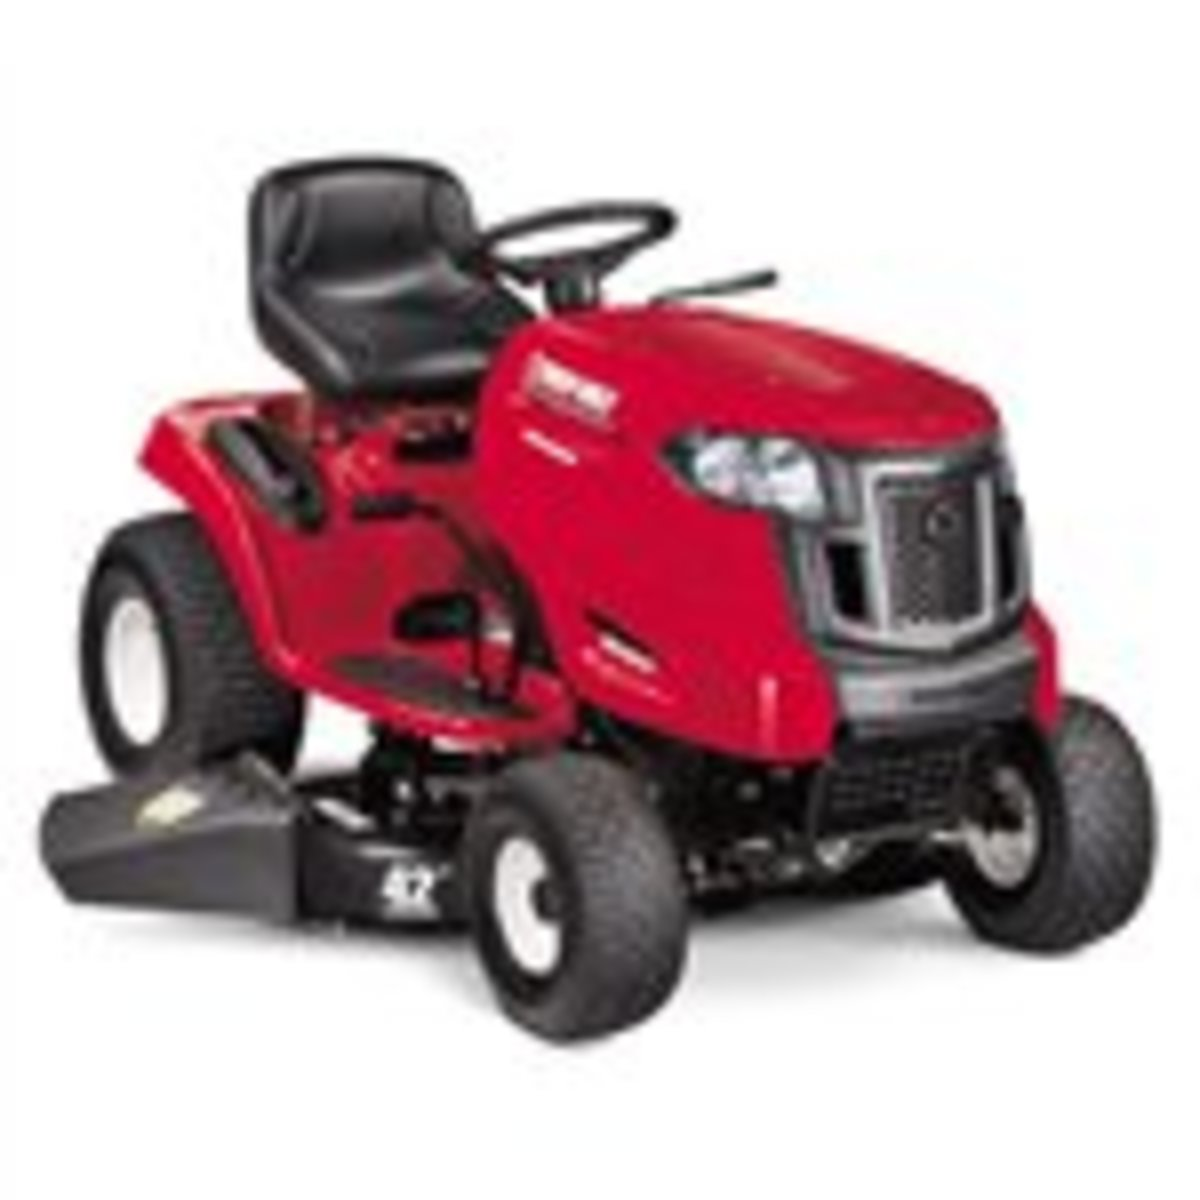 Winterizing and Storing Lawnmowers and Other Power Equipment